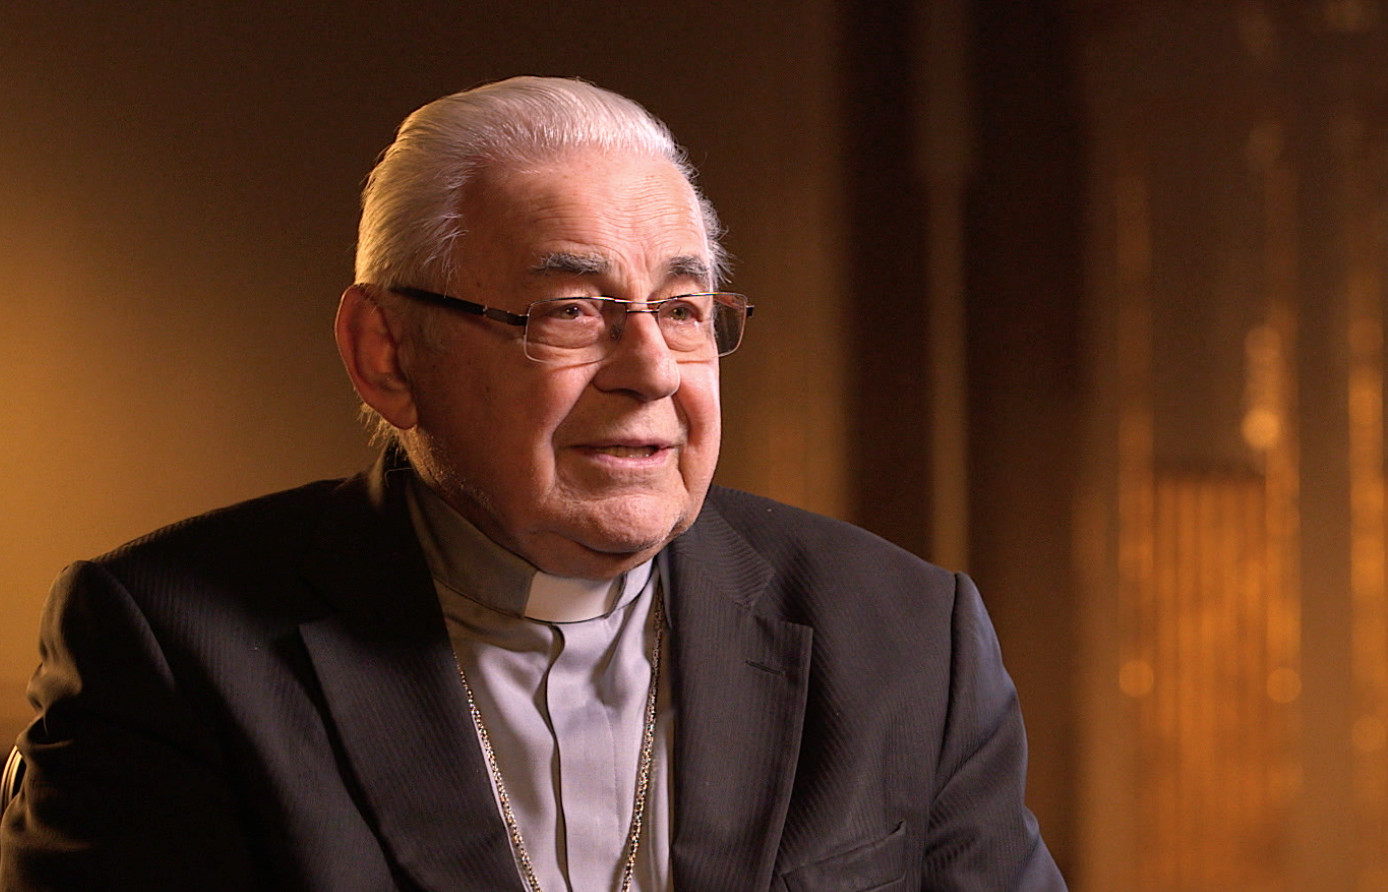 Cardinal Miloslav Vlk, interviewee on John Paul 2: Liberating a Continent, the Fall of Communism.